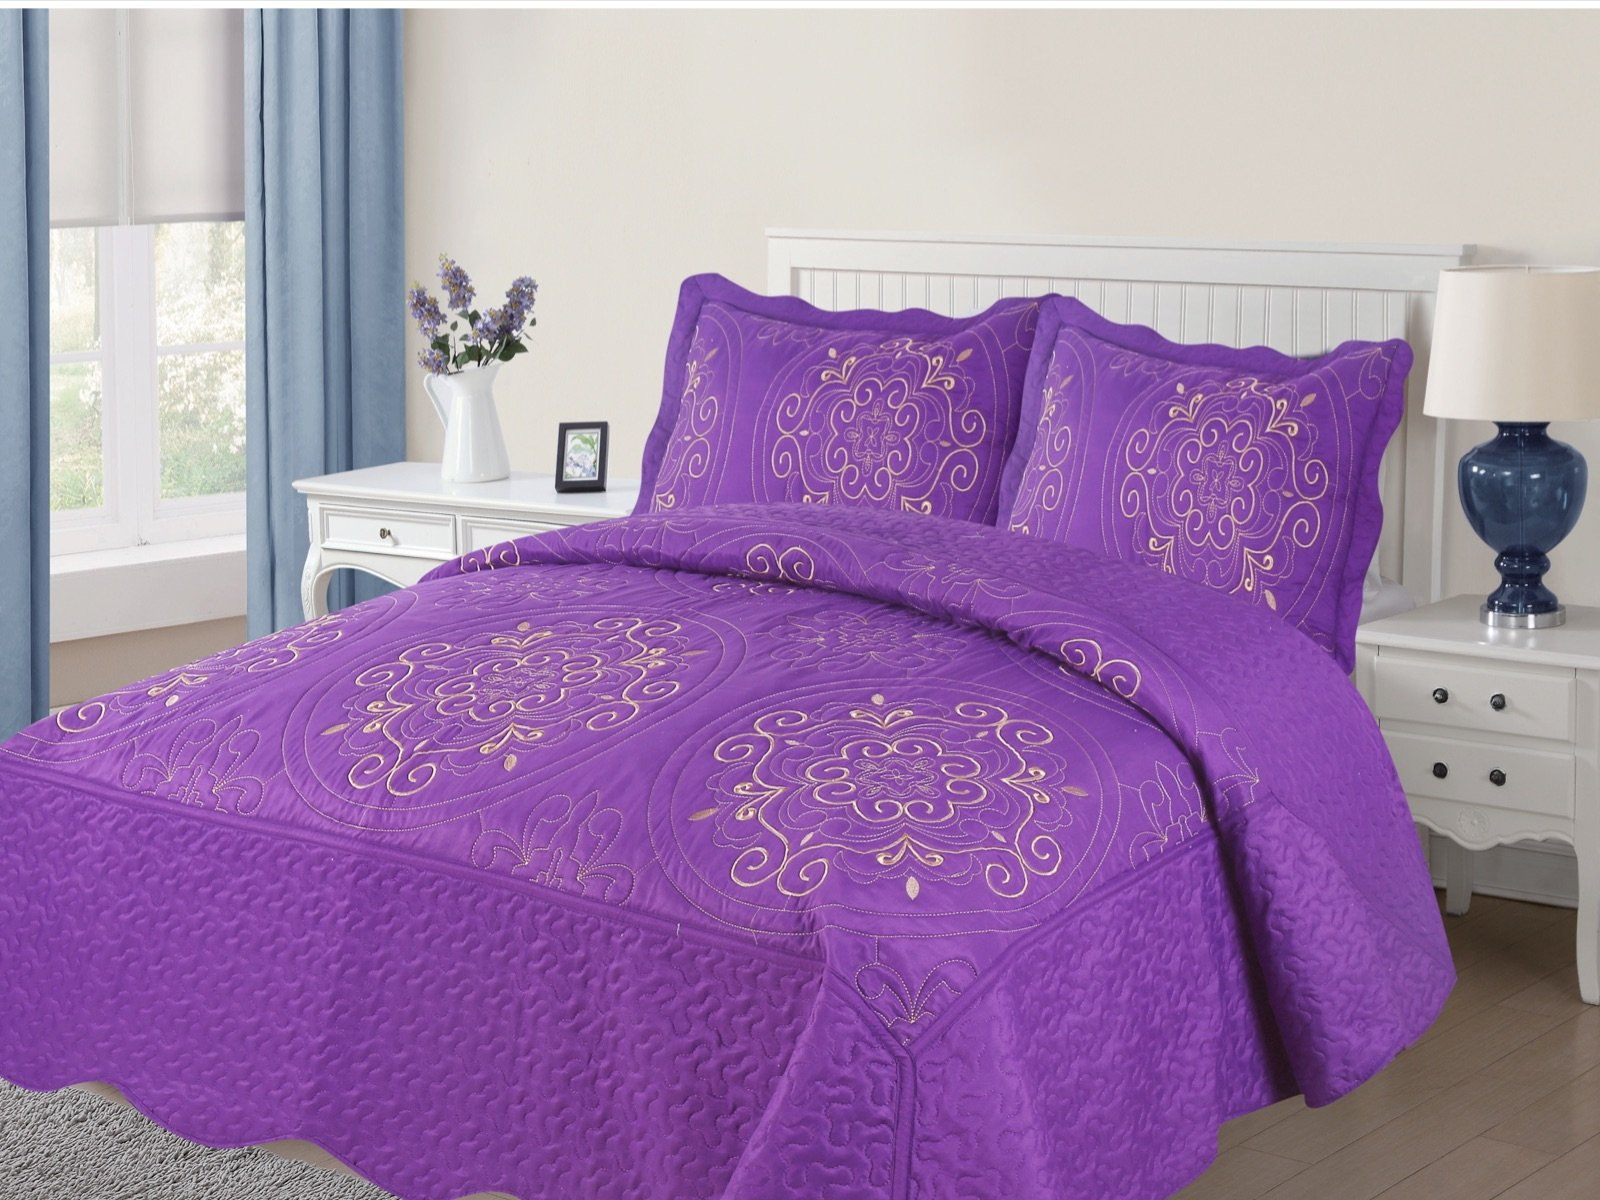 Empire Home Diana 3PC Quilted / Embroidered Oversized Medallion Bedspread (Purple, Full)